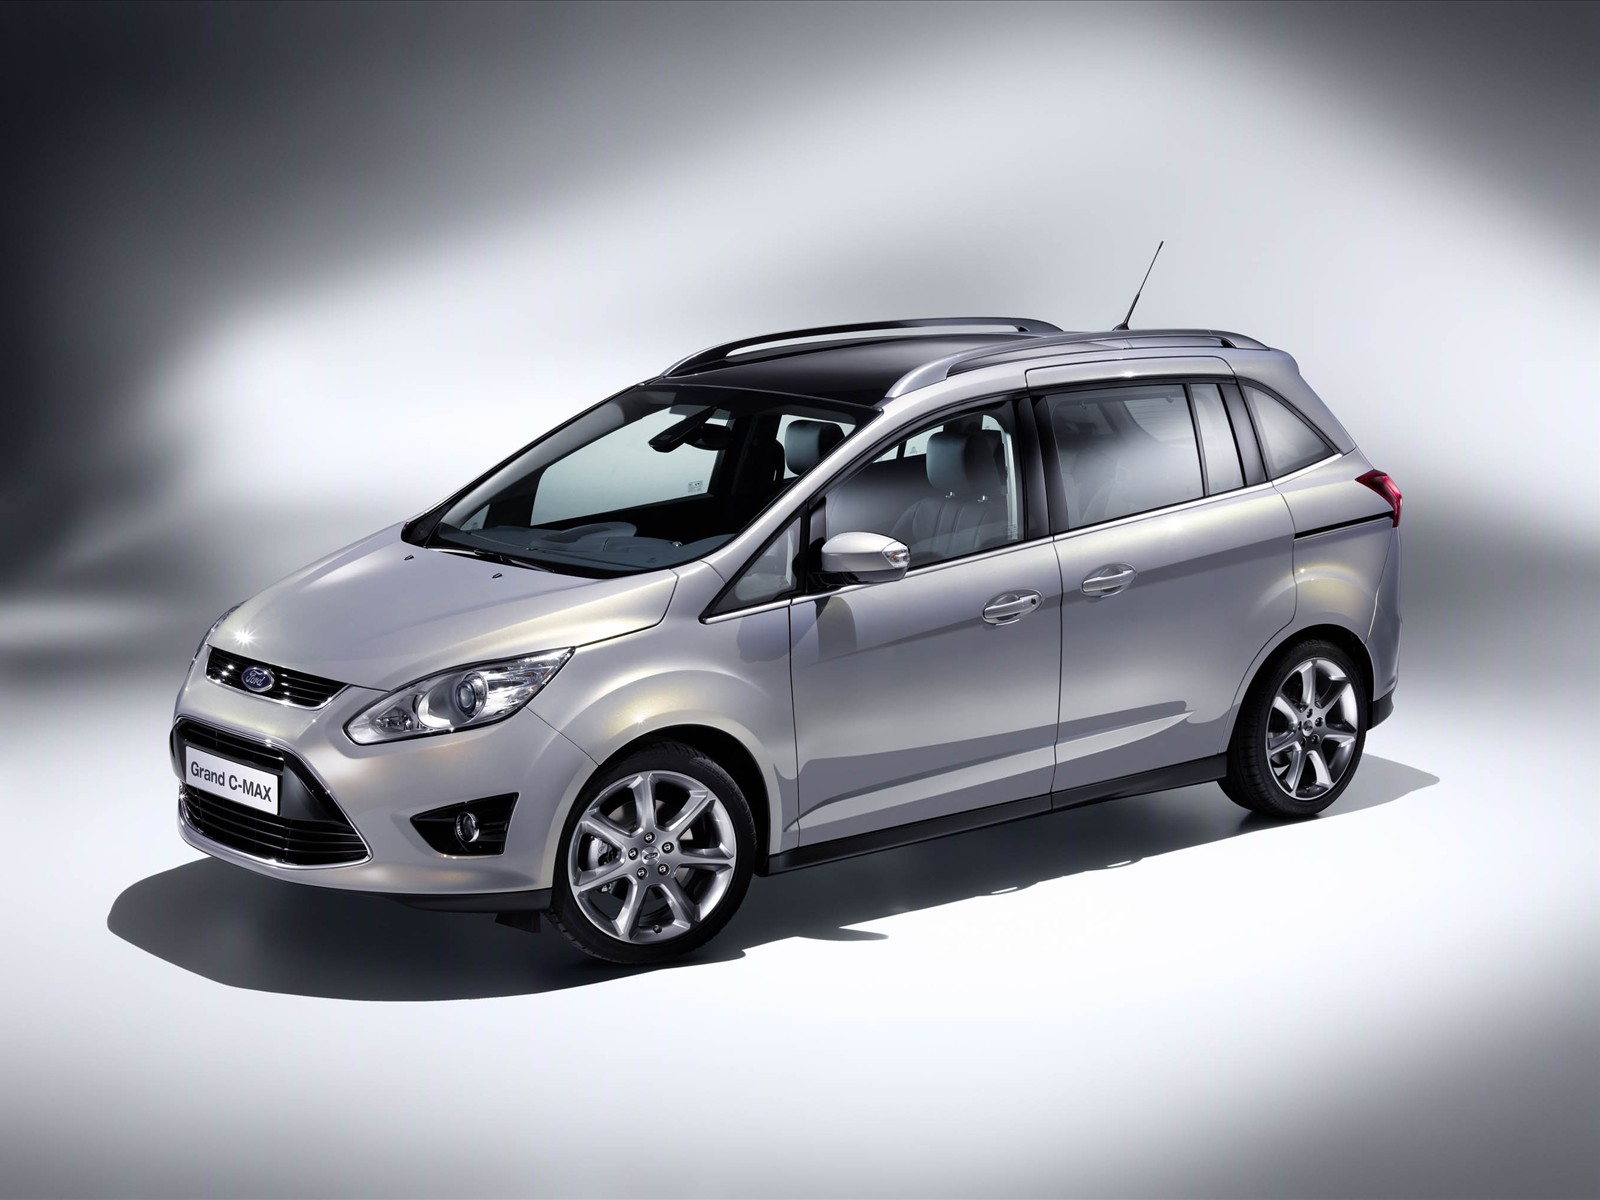 For Grand C Max >> Car Pictures: Ford Grand C-MAX 2011